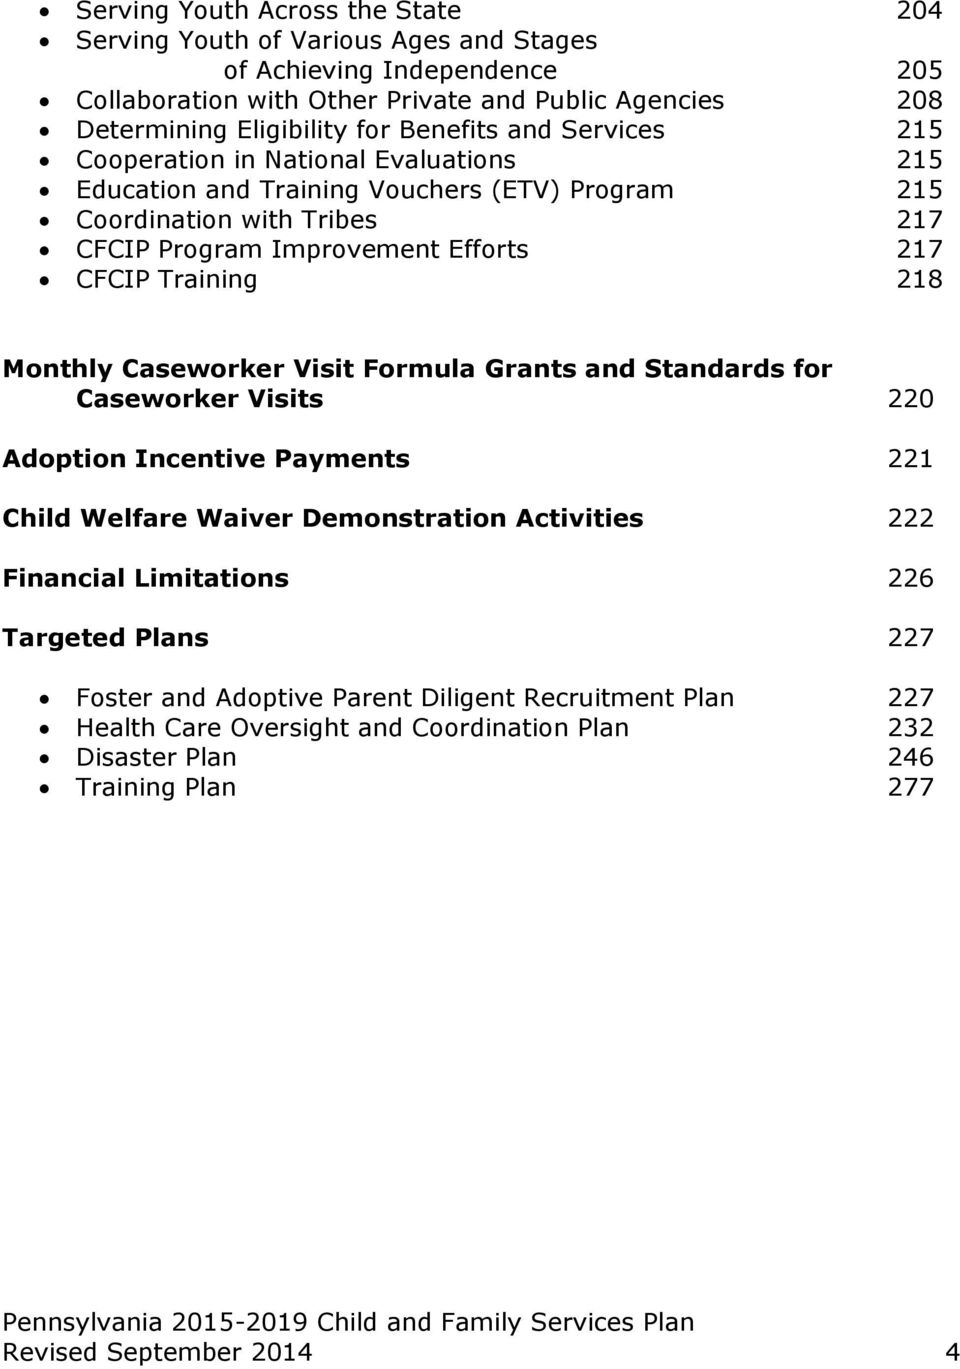 Training 218 Monthly Caseworker Visit Formula Grants and Standards for Caseworker Visits 220 Adoption Incentive Payments 221 Child Welfare Waiver Demonstration Activities 222 Financial